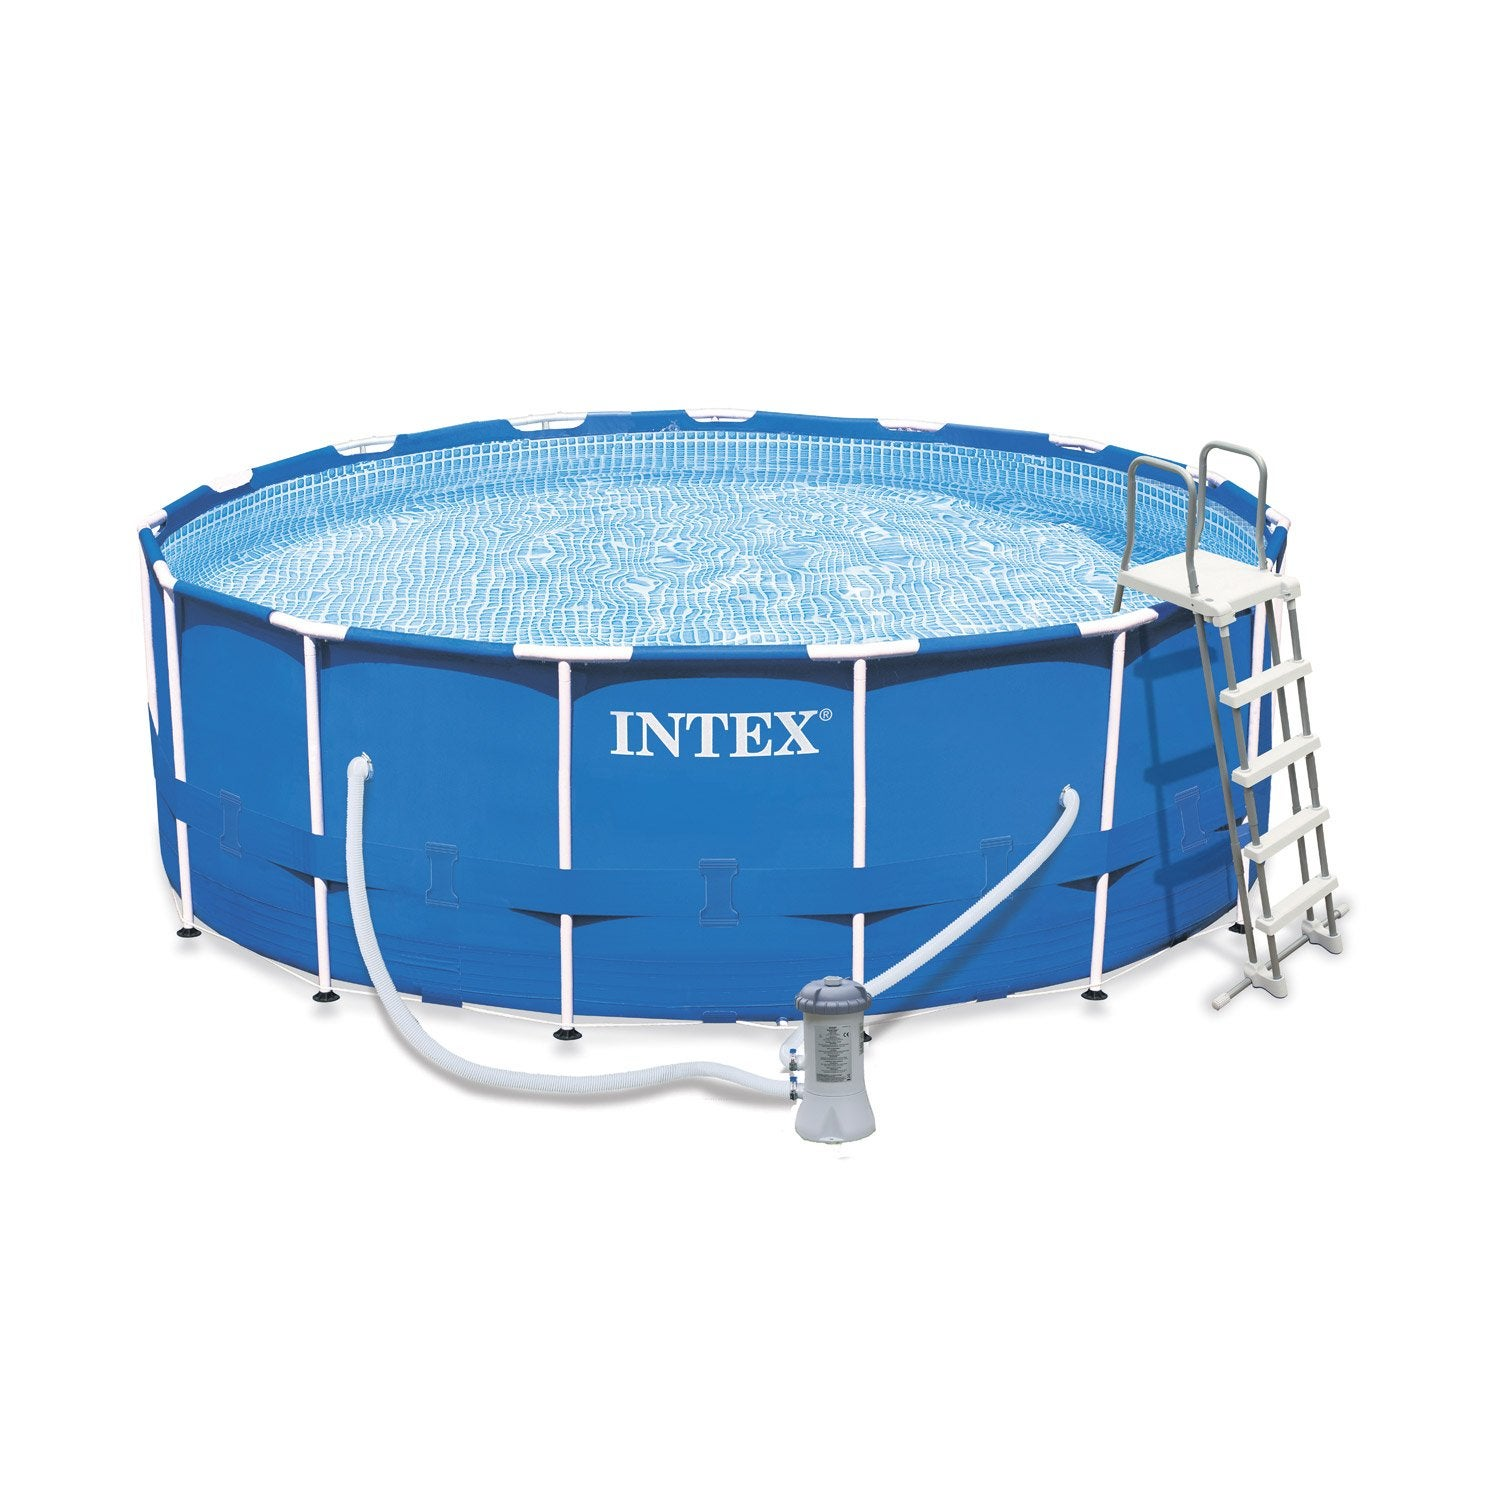 Piscine hors sol autoportante tubulaire metal frame intex for Piscine urbaine leroy merlin